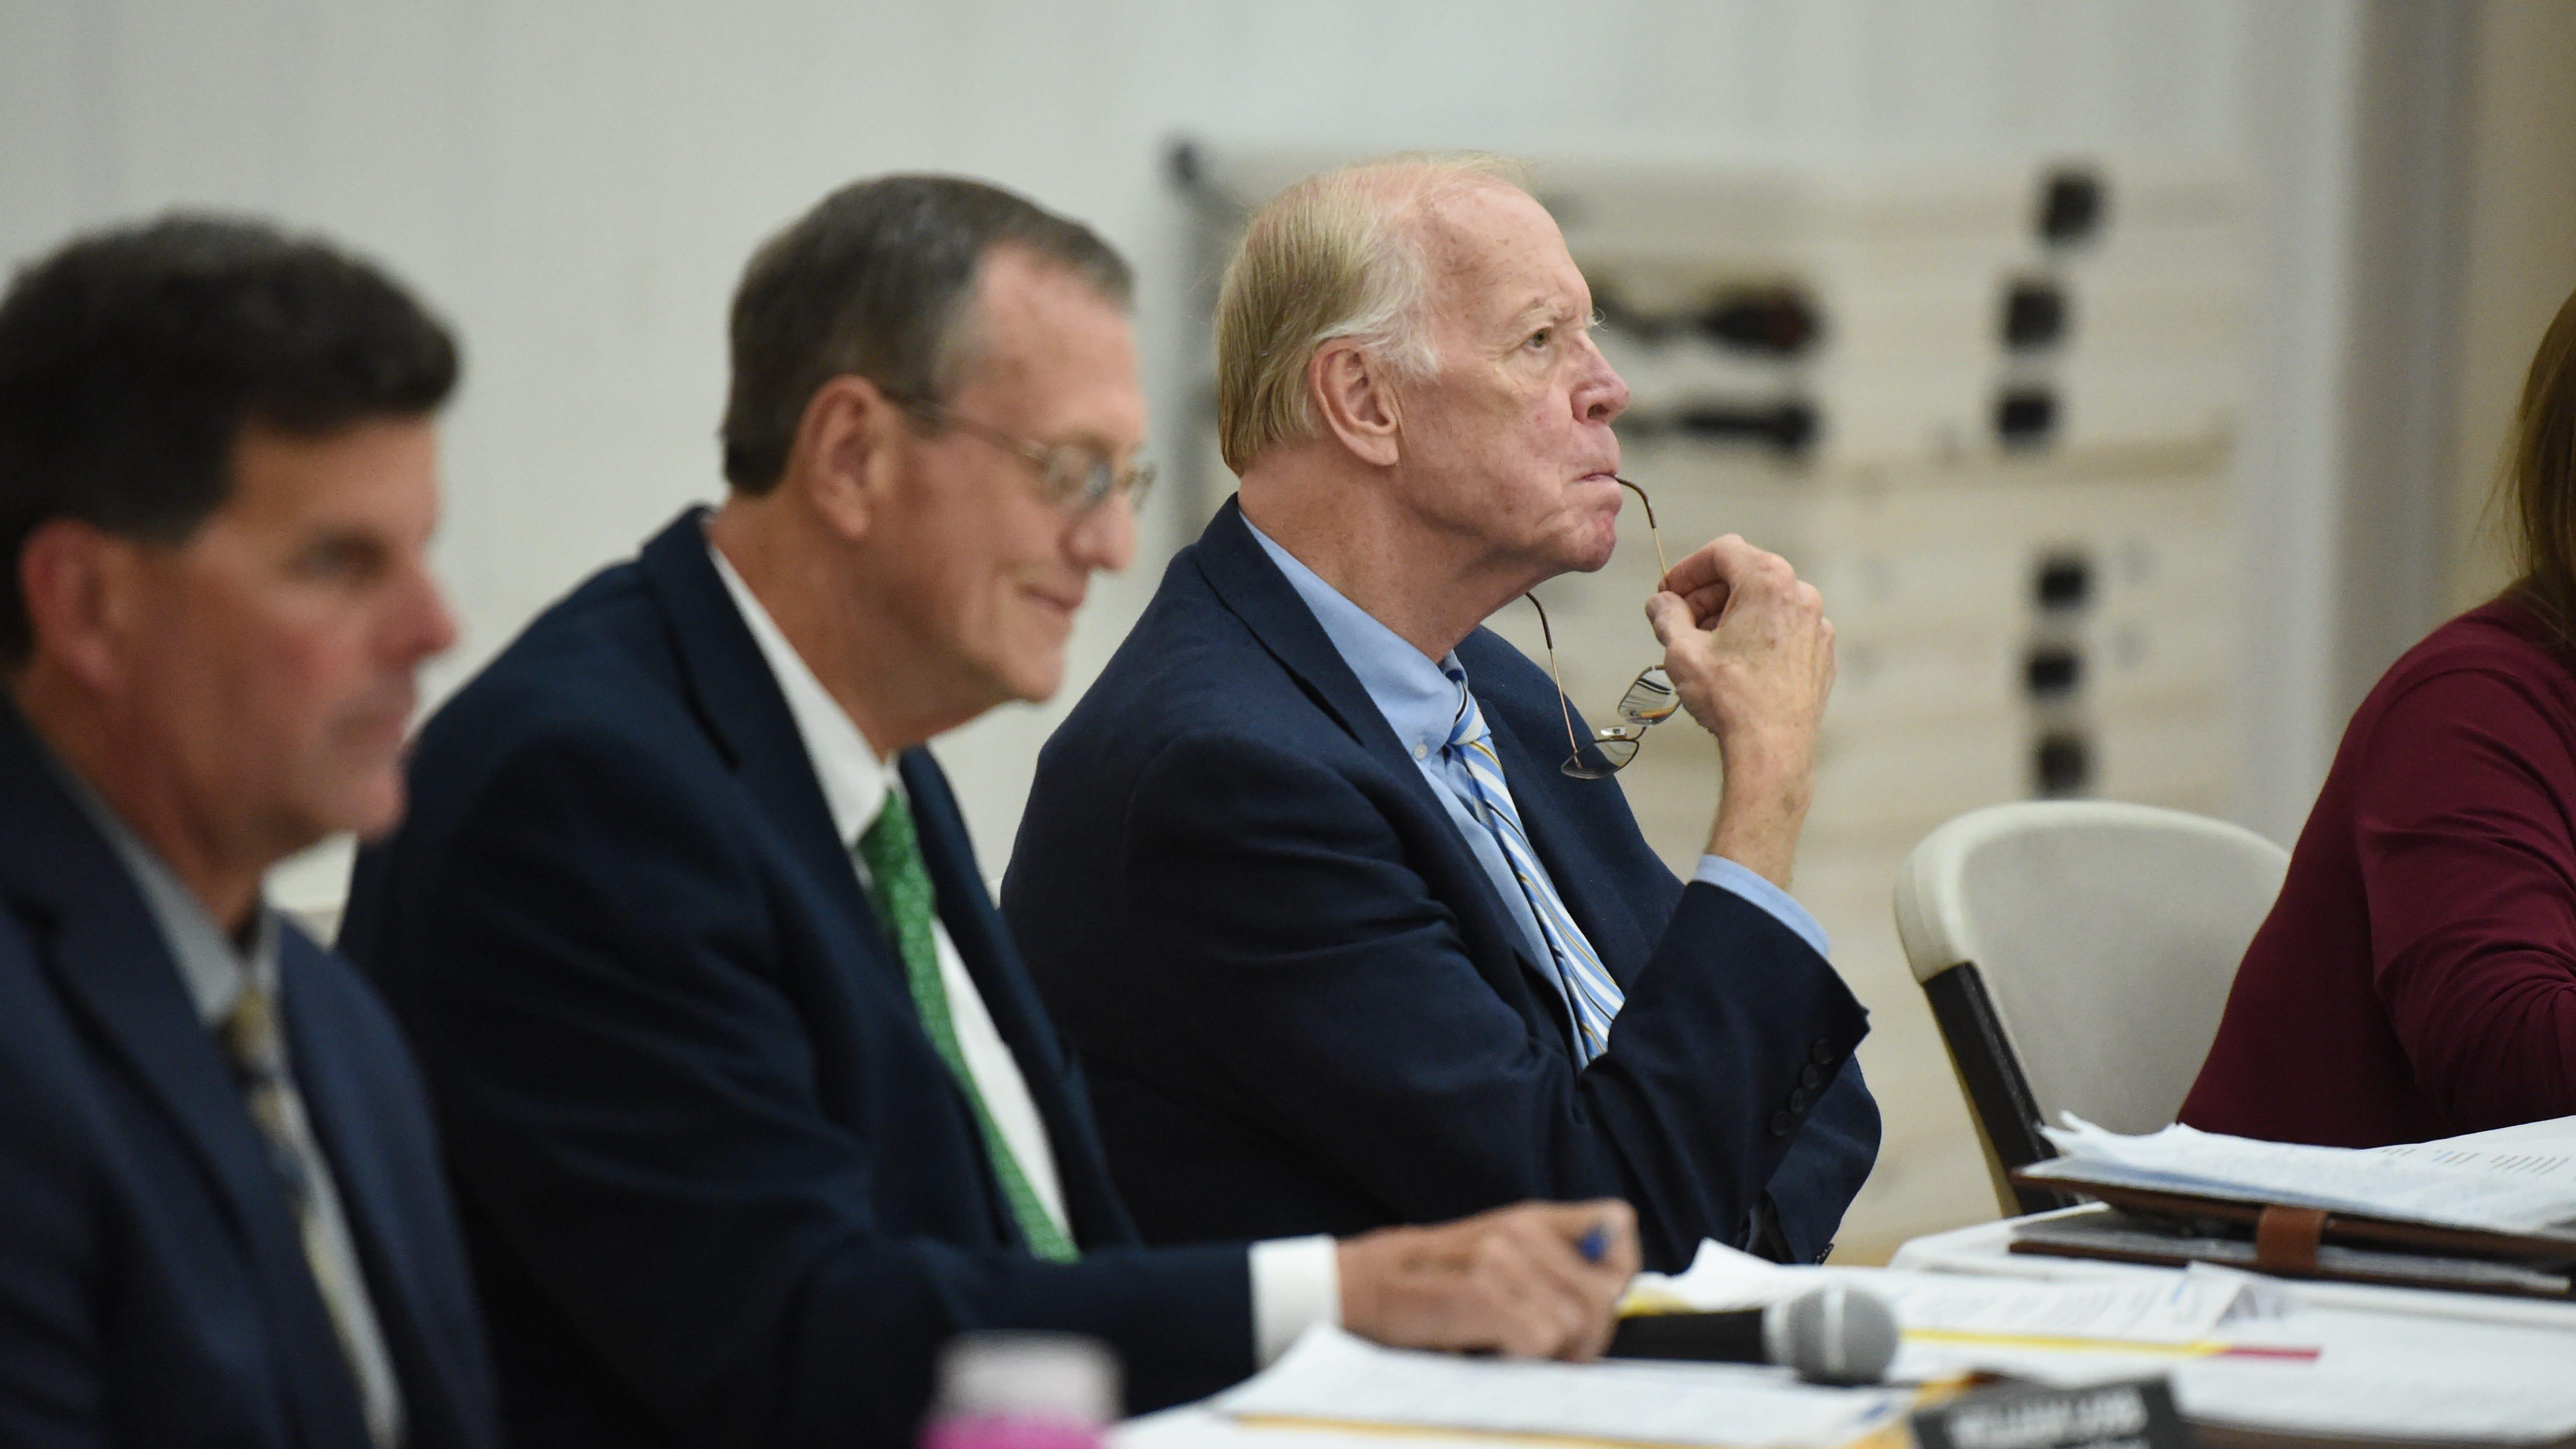 The Staunton City School Board released the name survey results